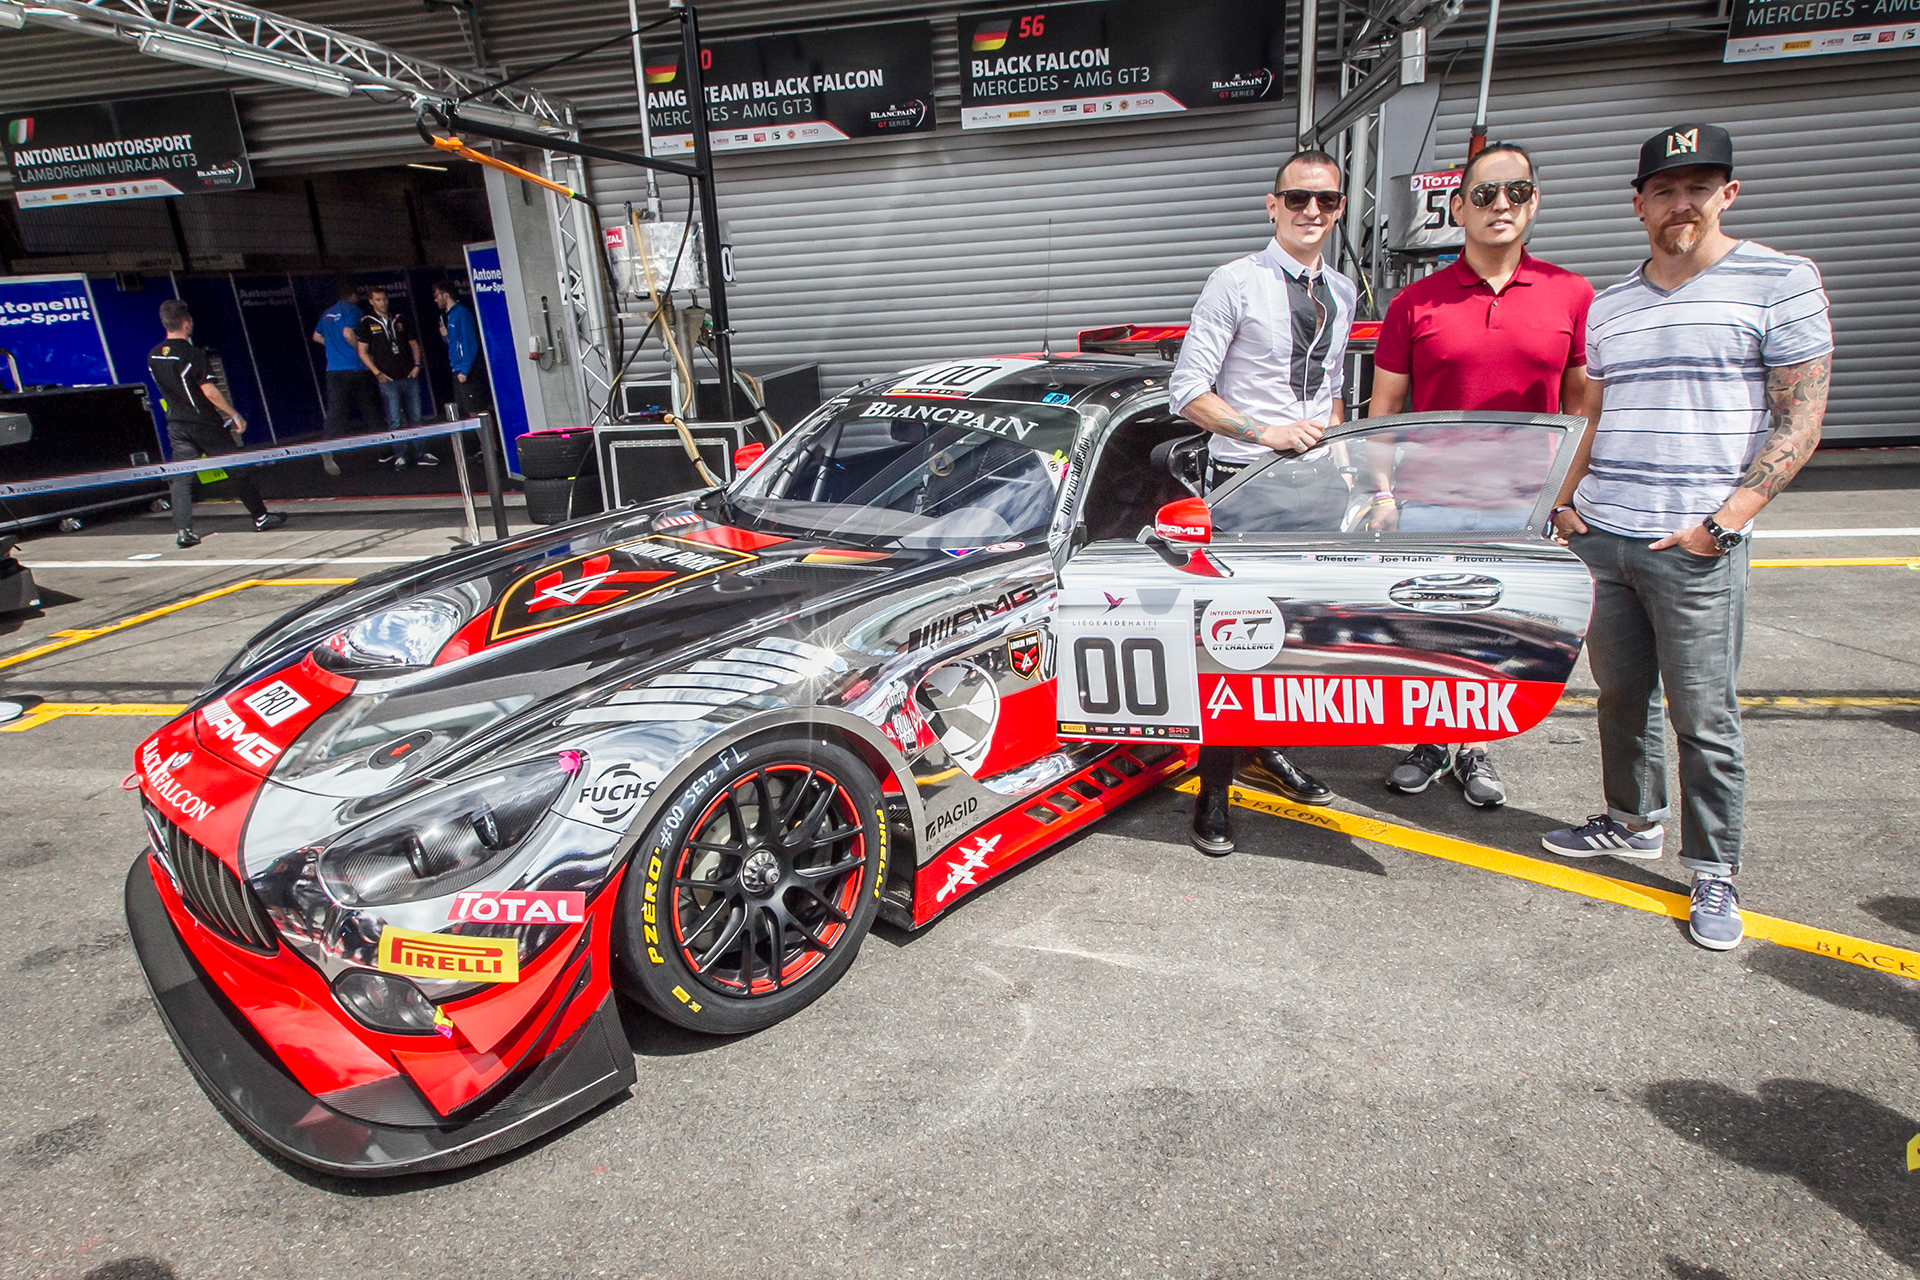 AMG GT3 - Team Linkin Park - Dave F - Mr Hahn - Chester - 24 hours race Spa 2016 - Photo Daimler AG